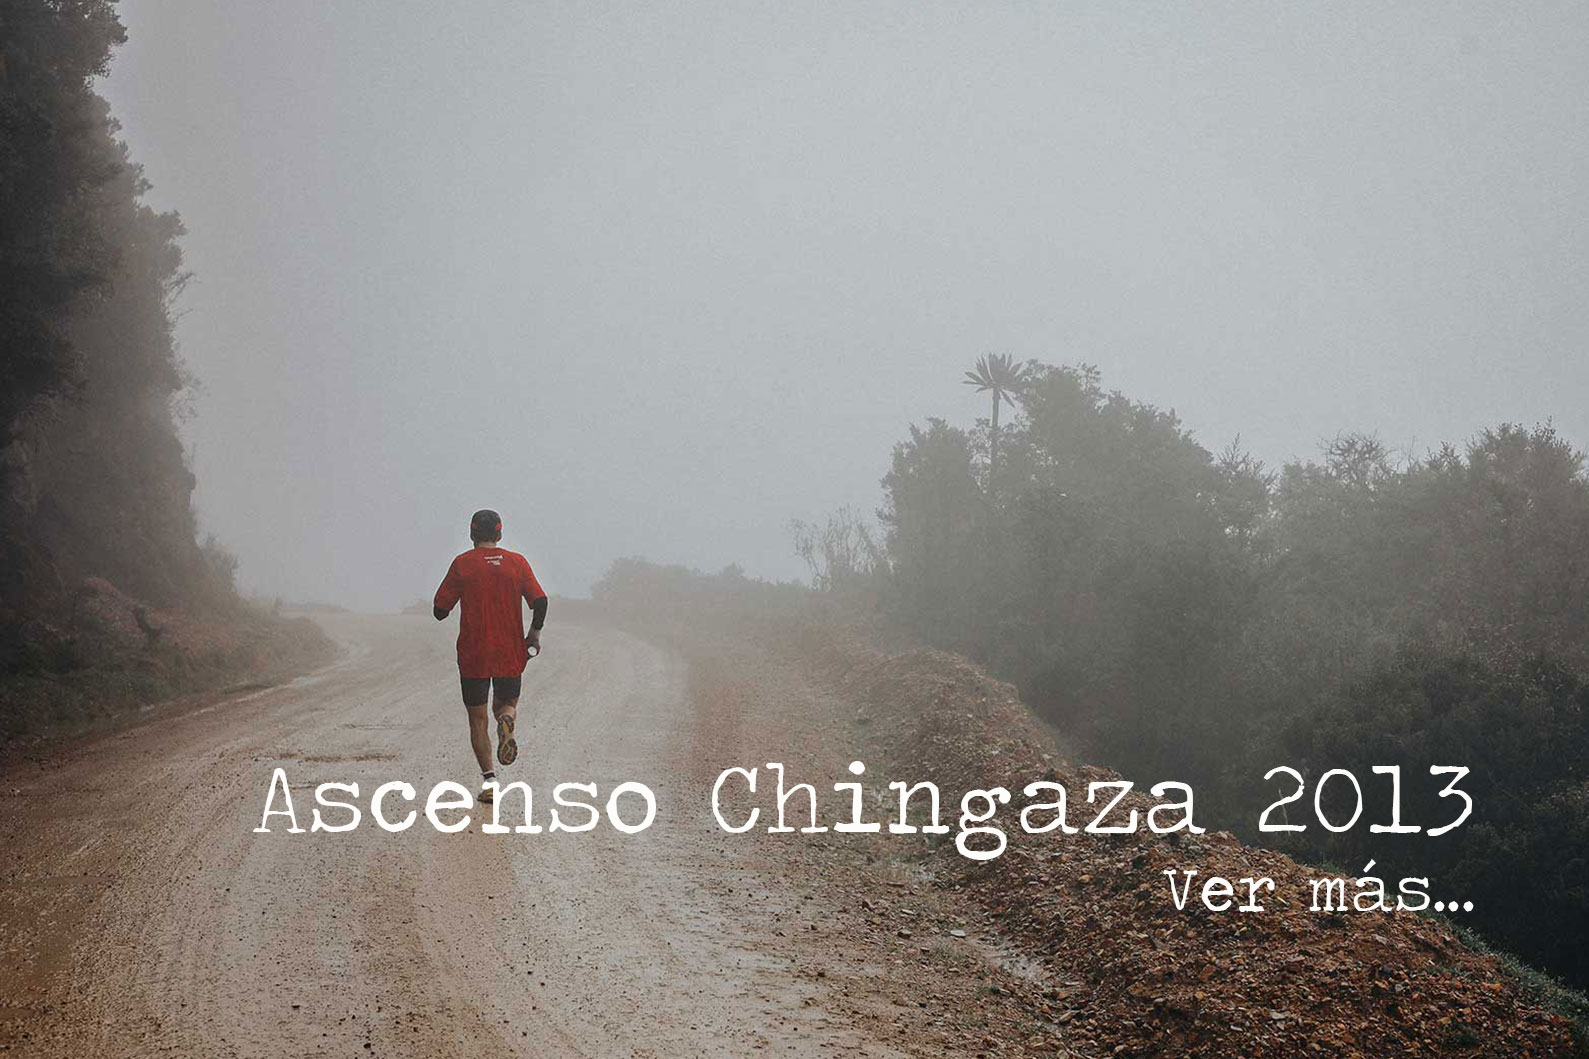 Ascenso Chingaza 2013s